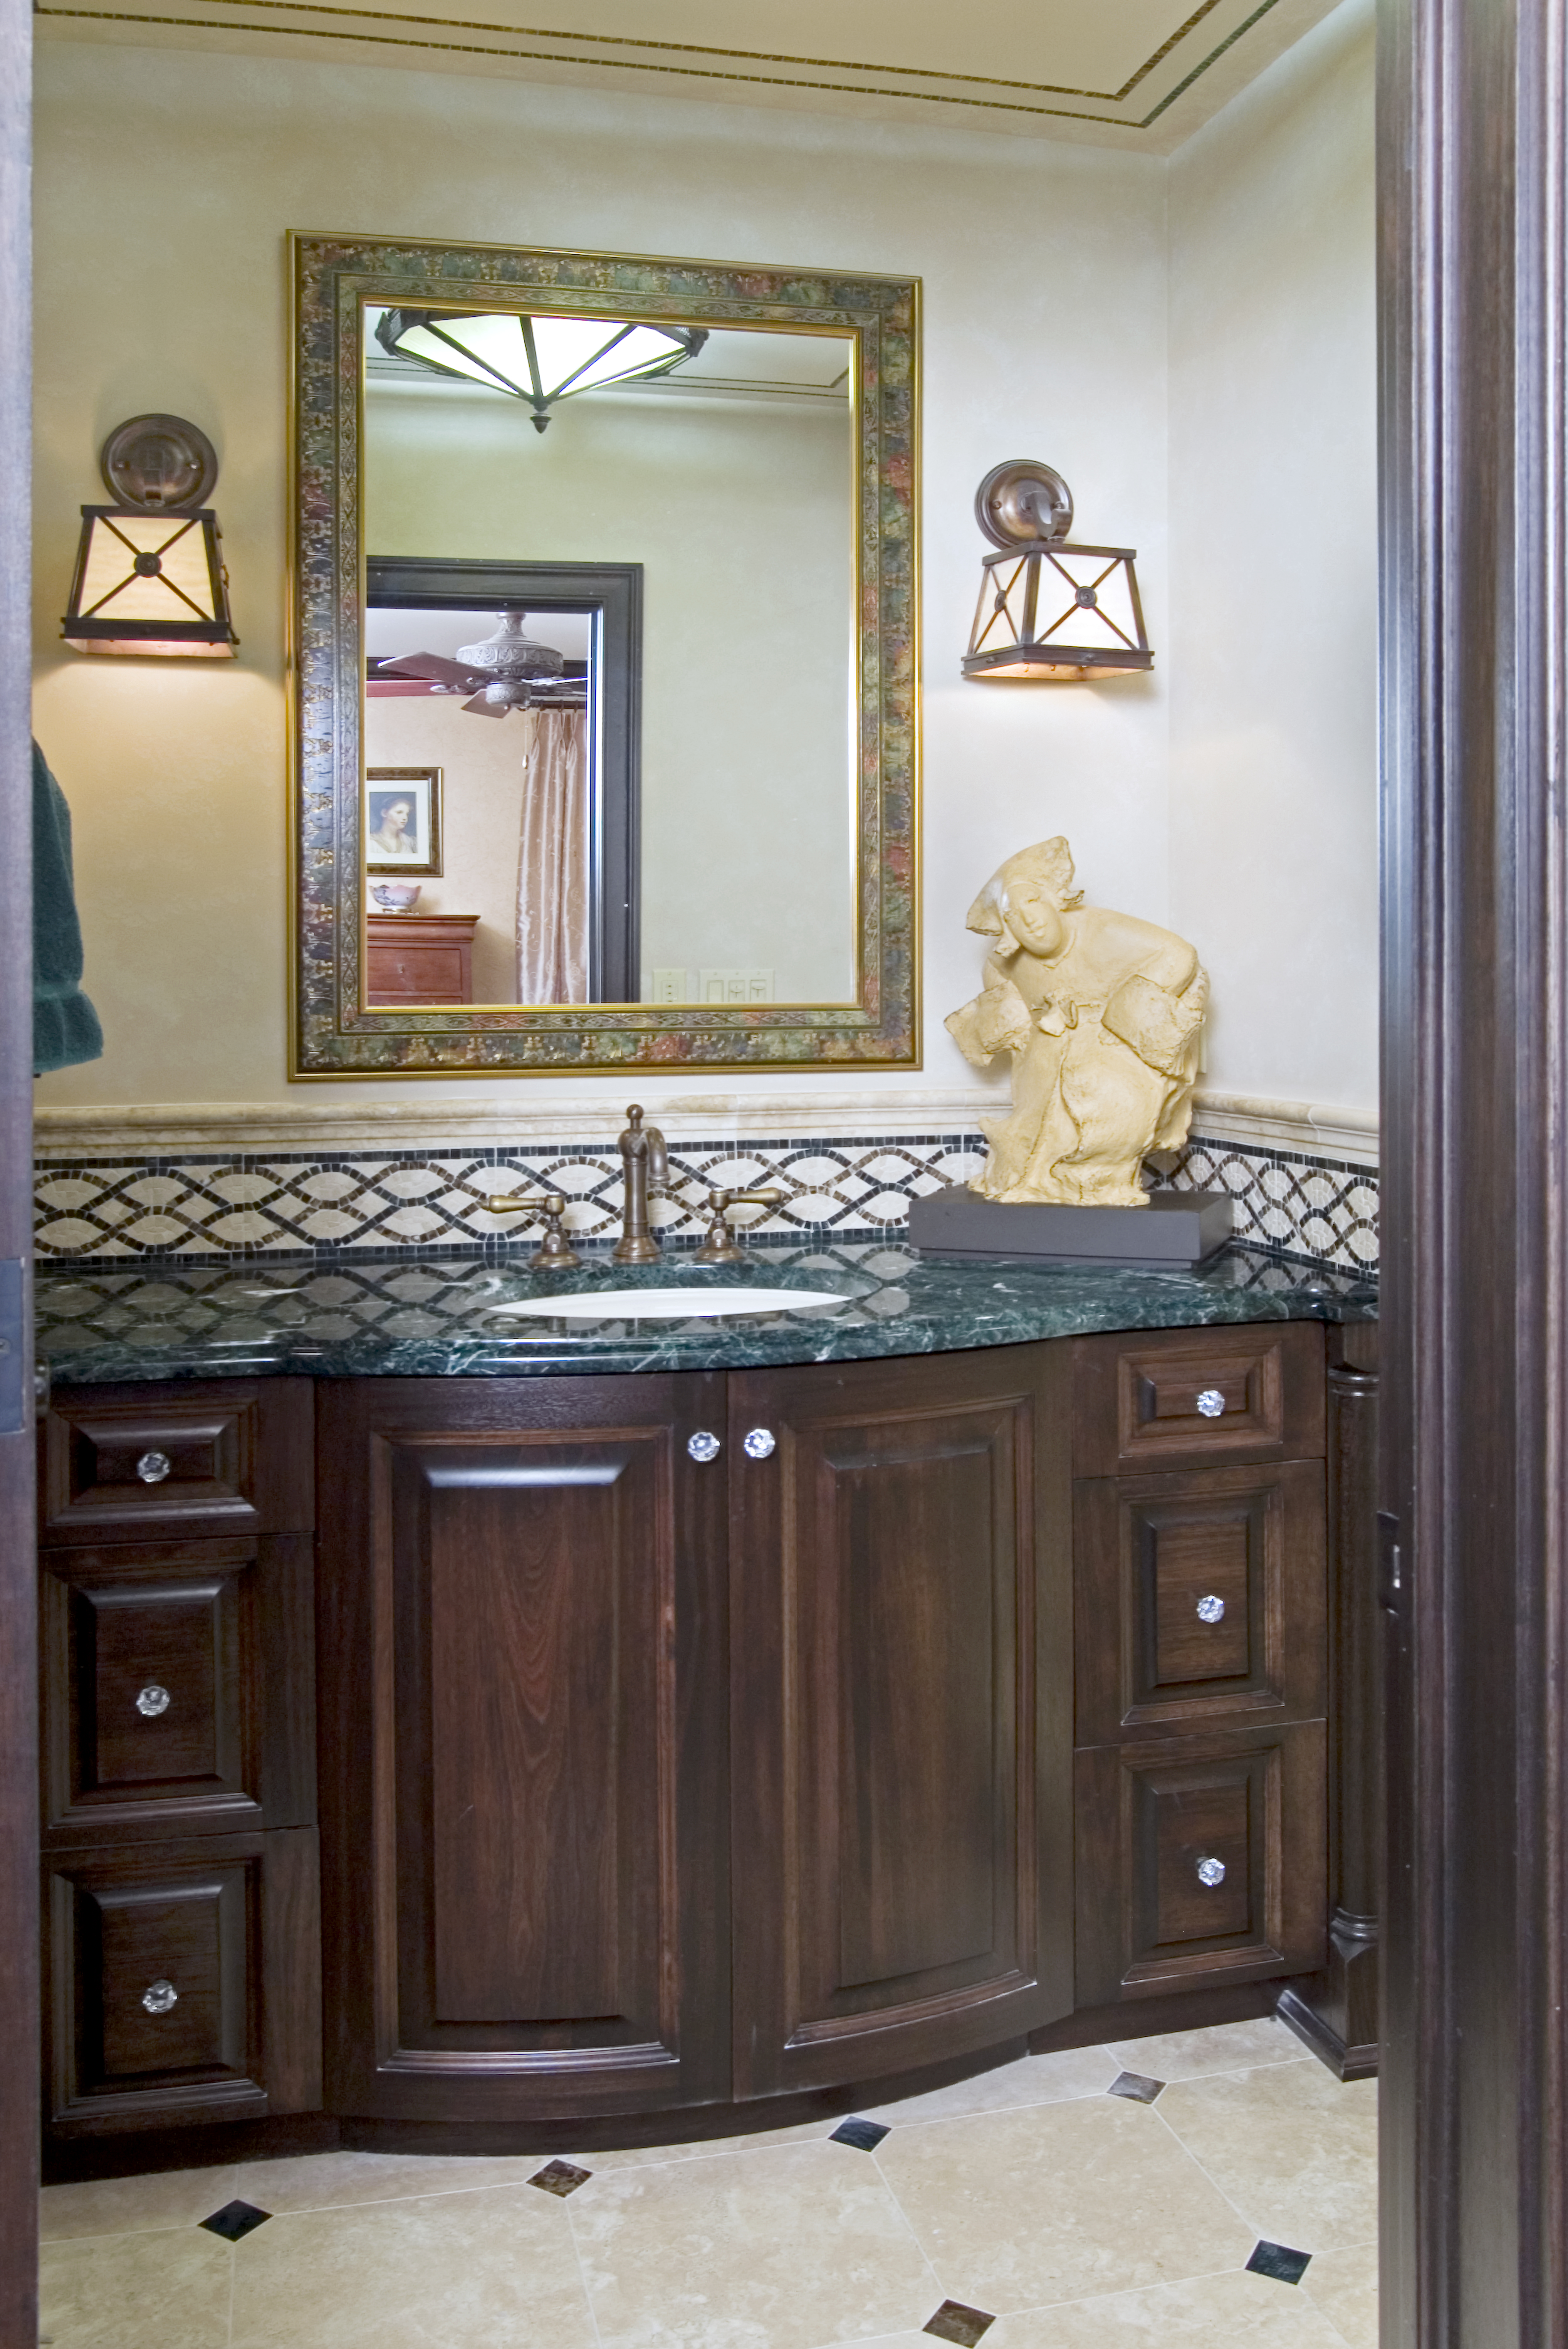 Master Bath Renovation Philadelphia Condo Custom Cabinetry Mosaic Tiles